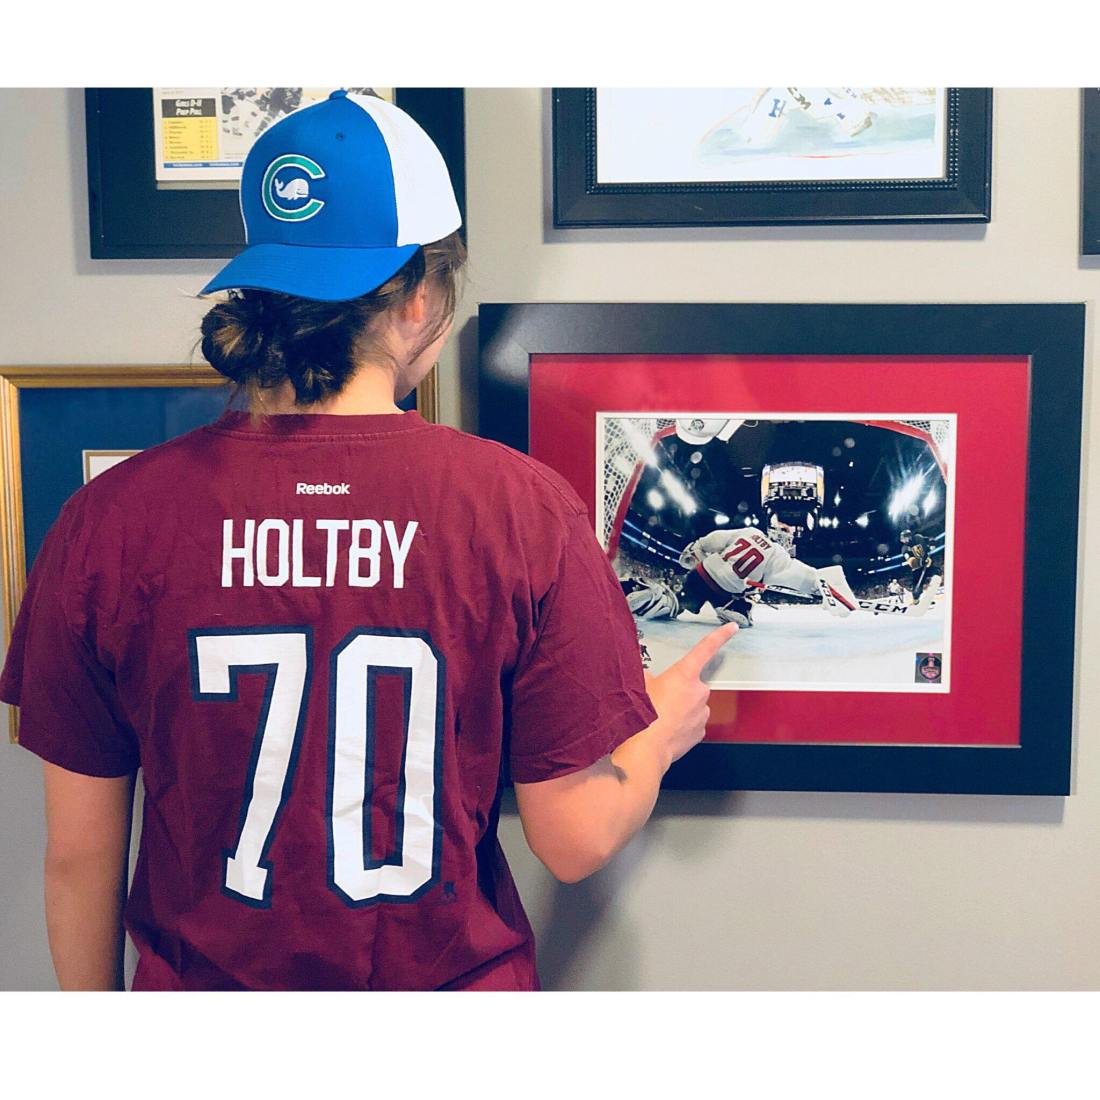 Walther Holtby Shirsey.jpg